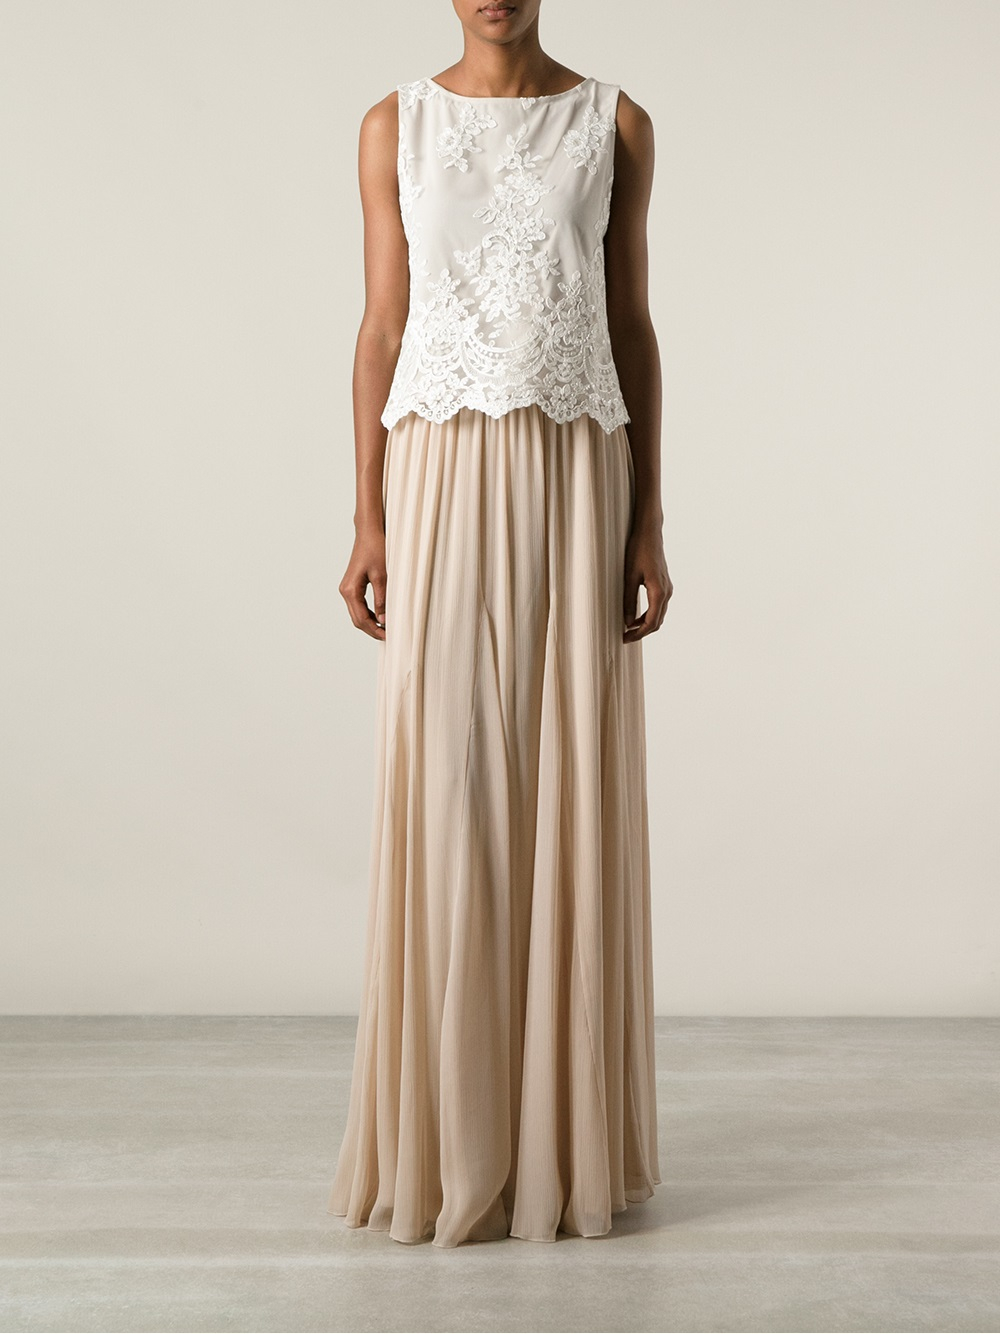 Alice   olivia Maxi Skirt in Natural | Lyst